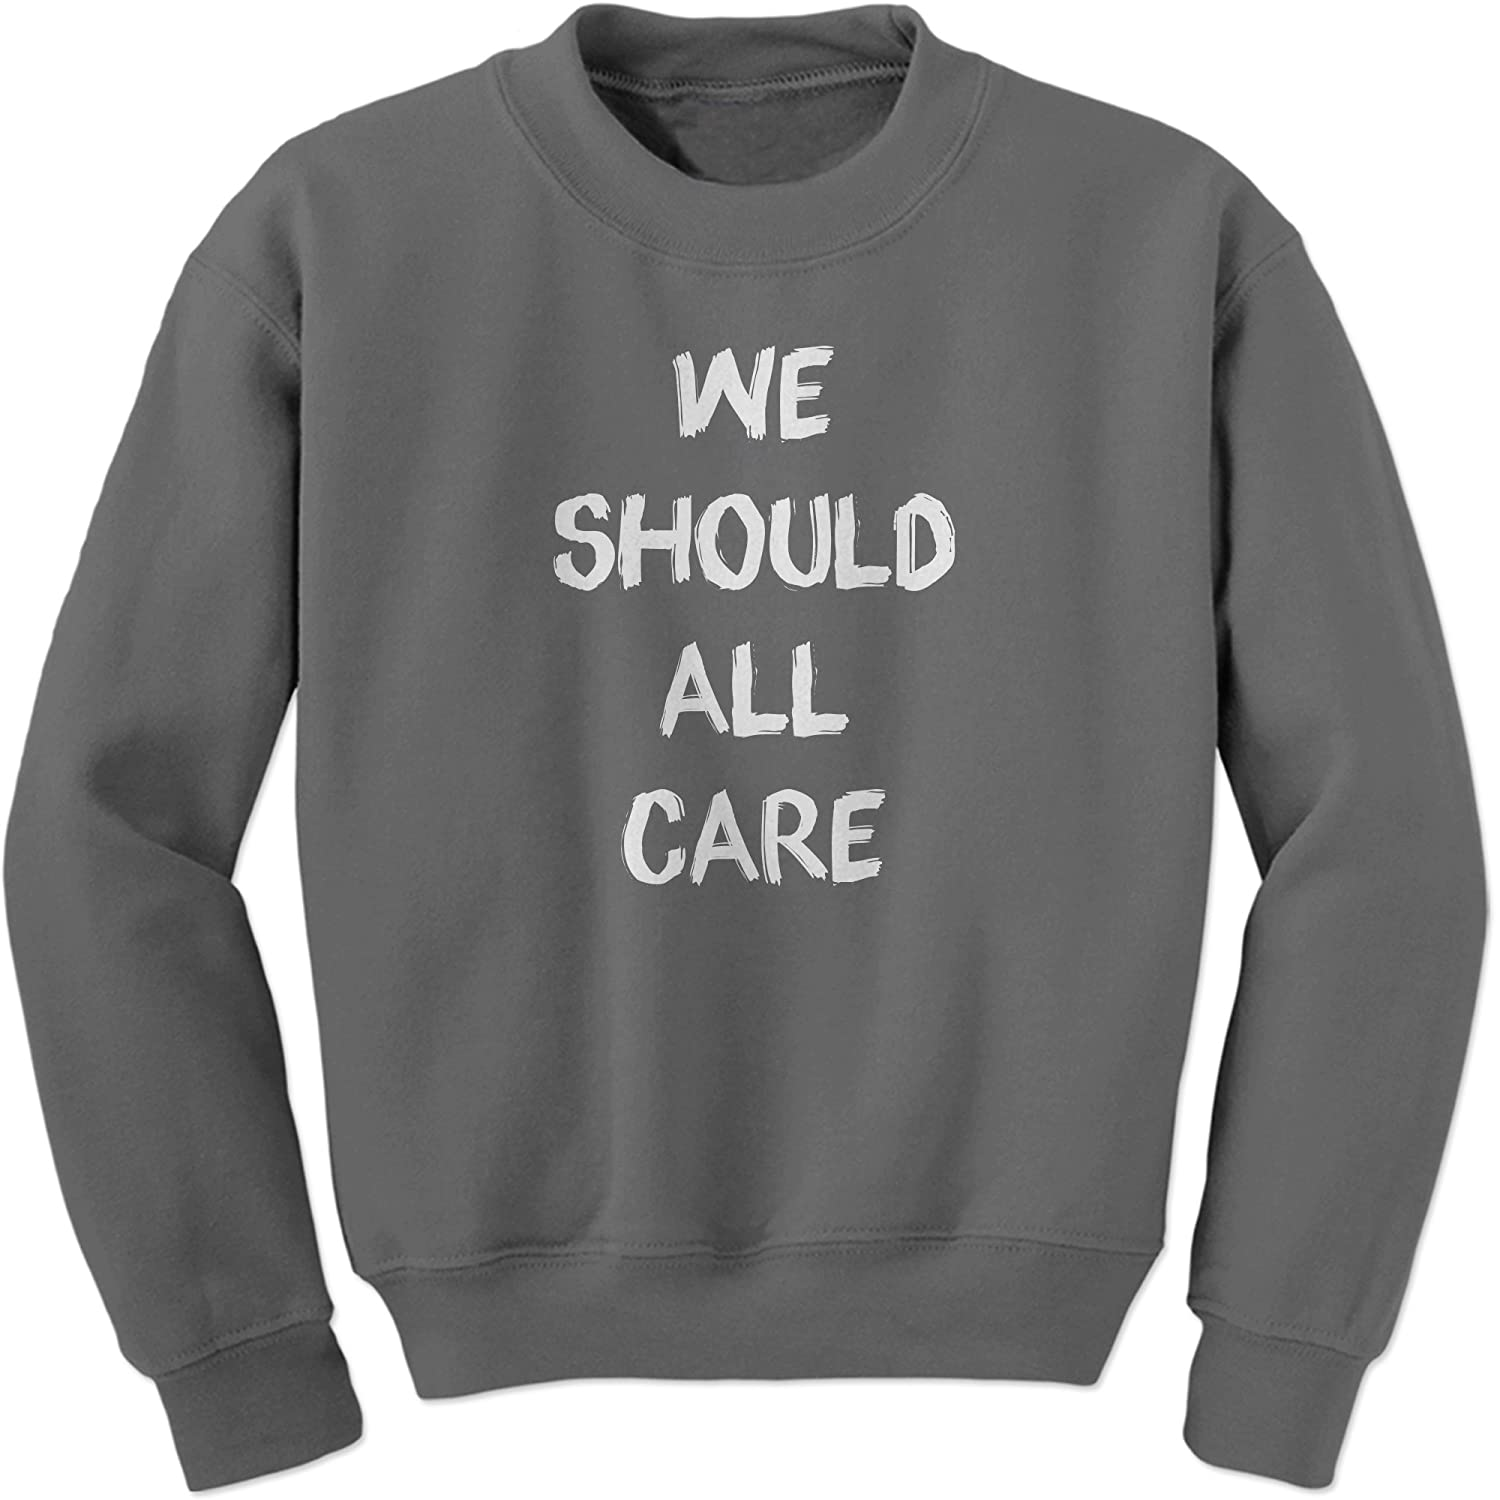 Expression Tees We Should All Care Crewneck Sweatshirt